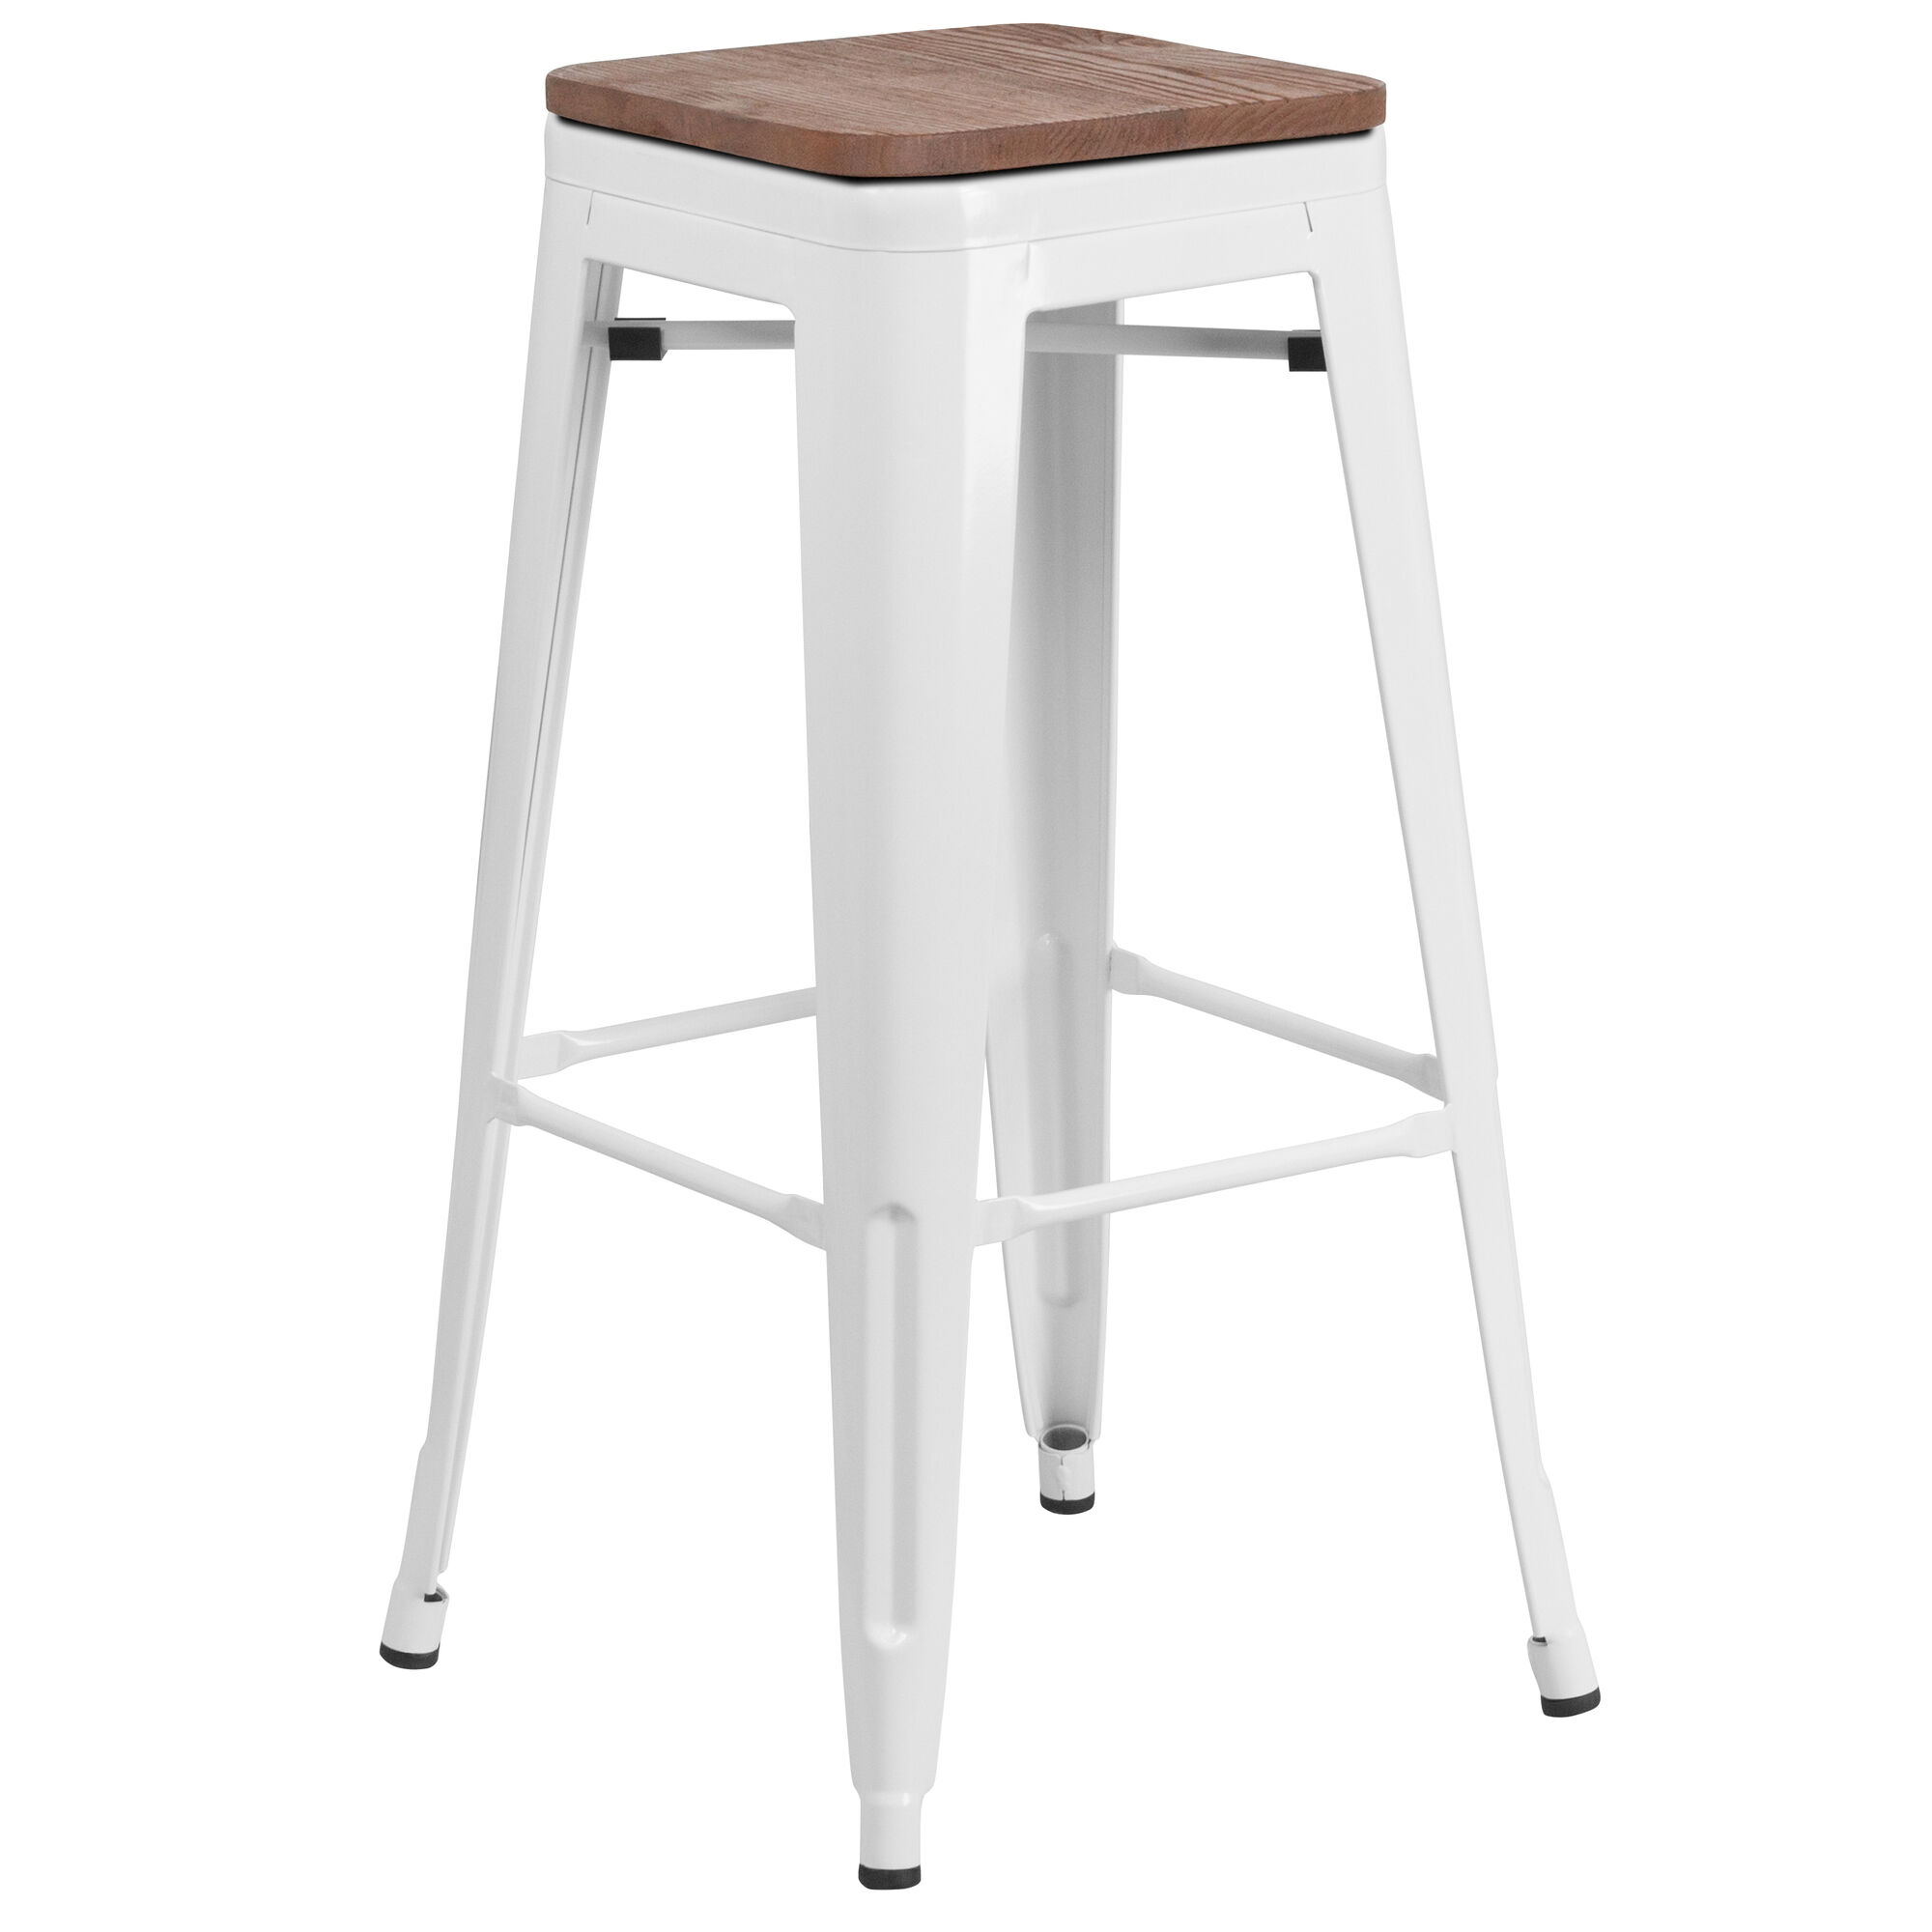 30 White Metal Barstool Ch 31320 30 Wh Wd Gg Stackchairs4lesscom